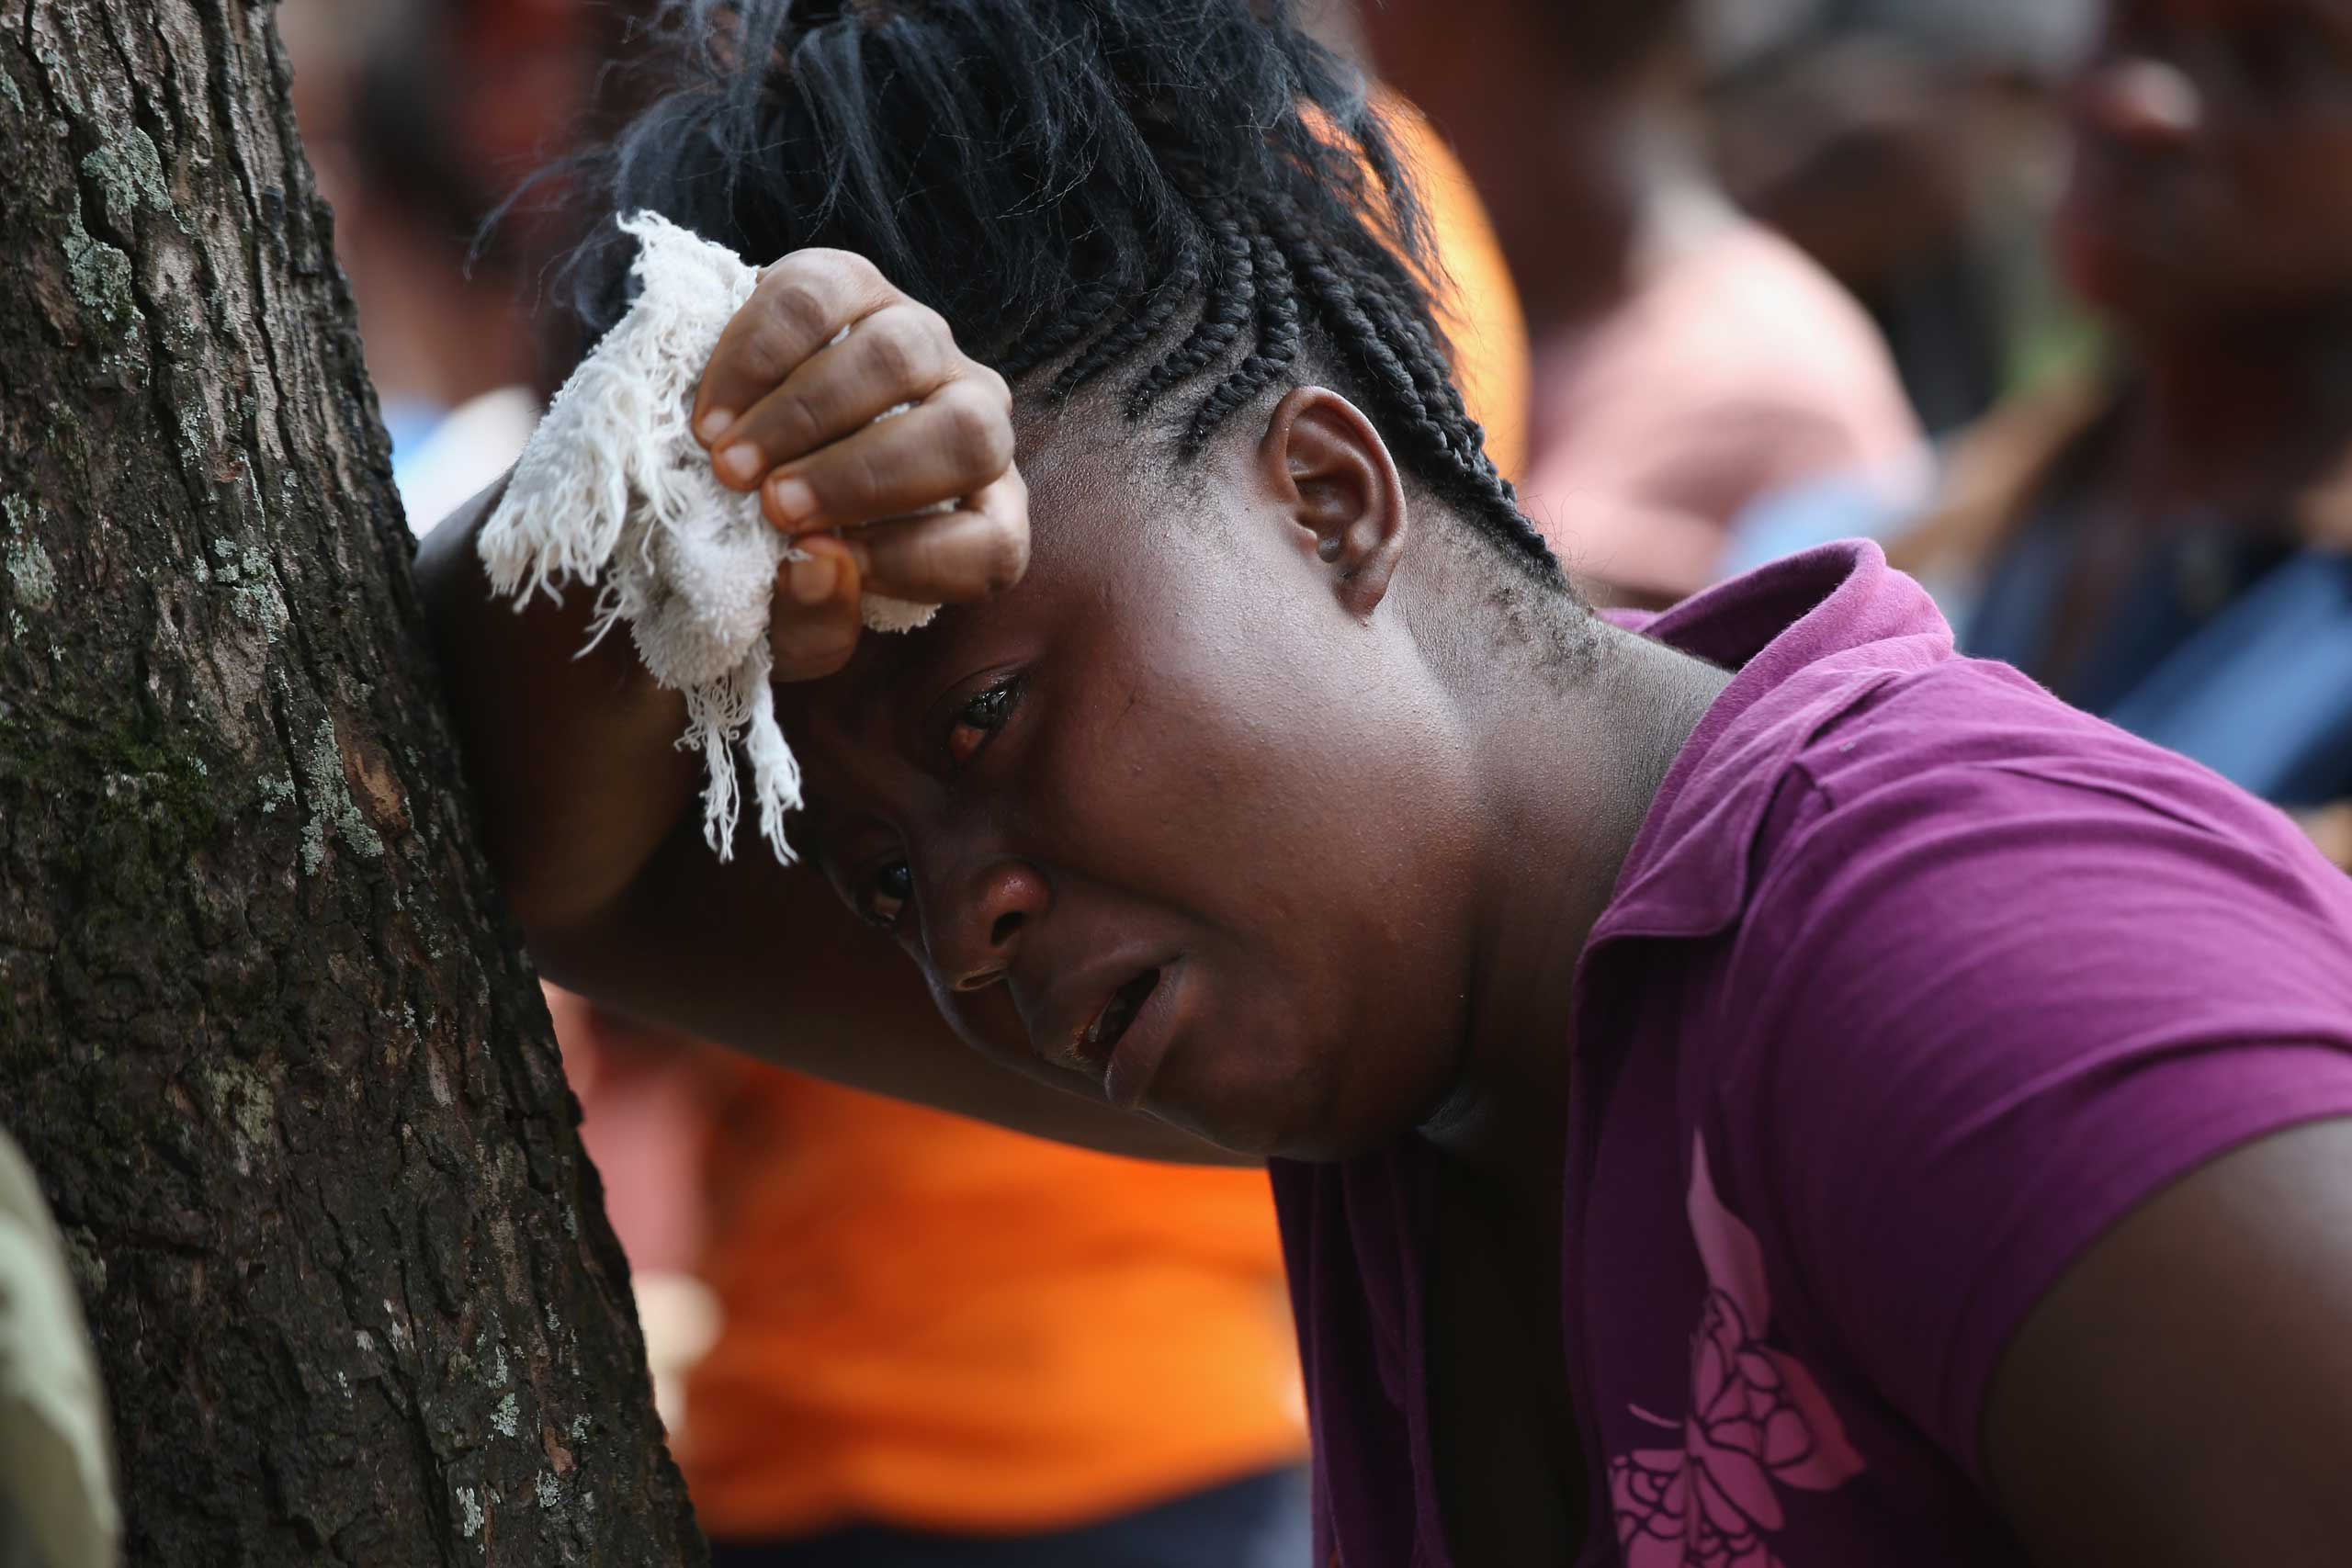 Korpo Klay watches as a Liberian health department burial team prepares to enter the home of her deceased cousin Kormassa Kaba, who was suspected of dying of the Ebola virus on Aug. 14, 2014 in Monrovia.